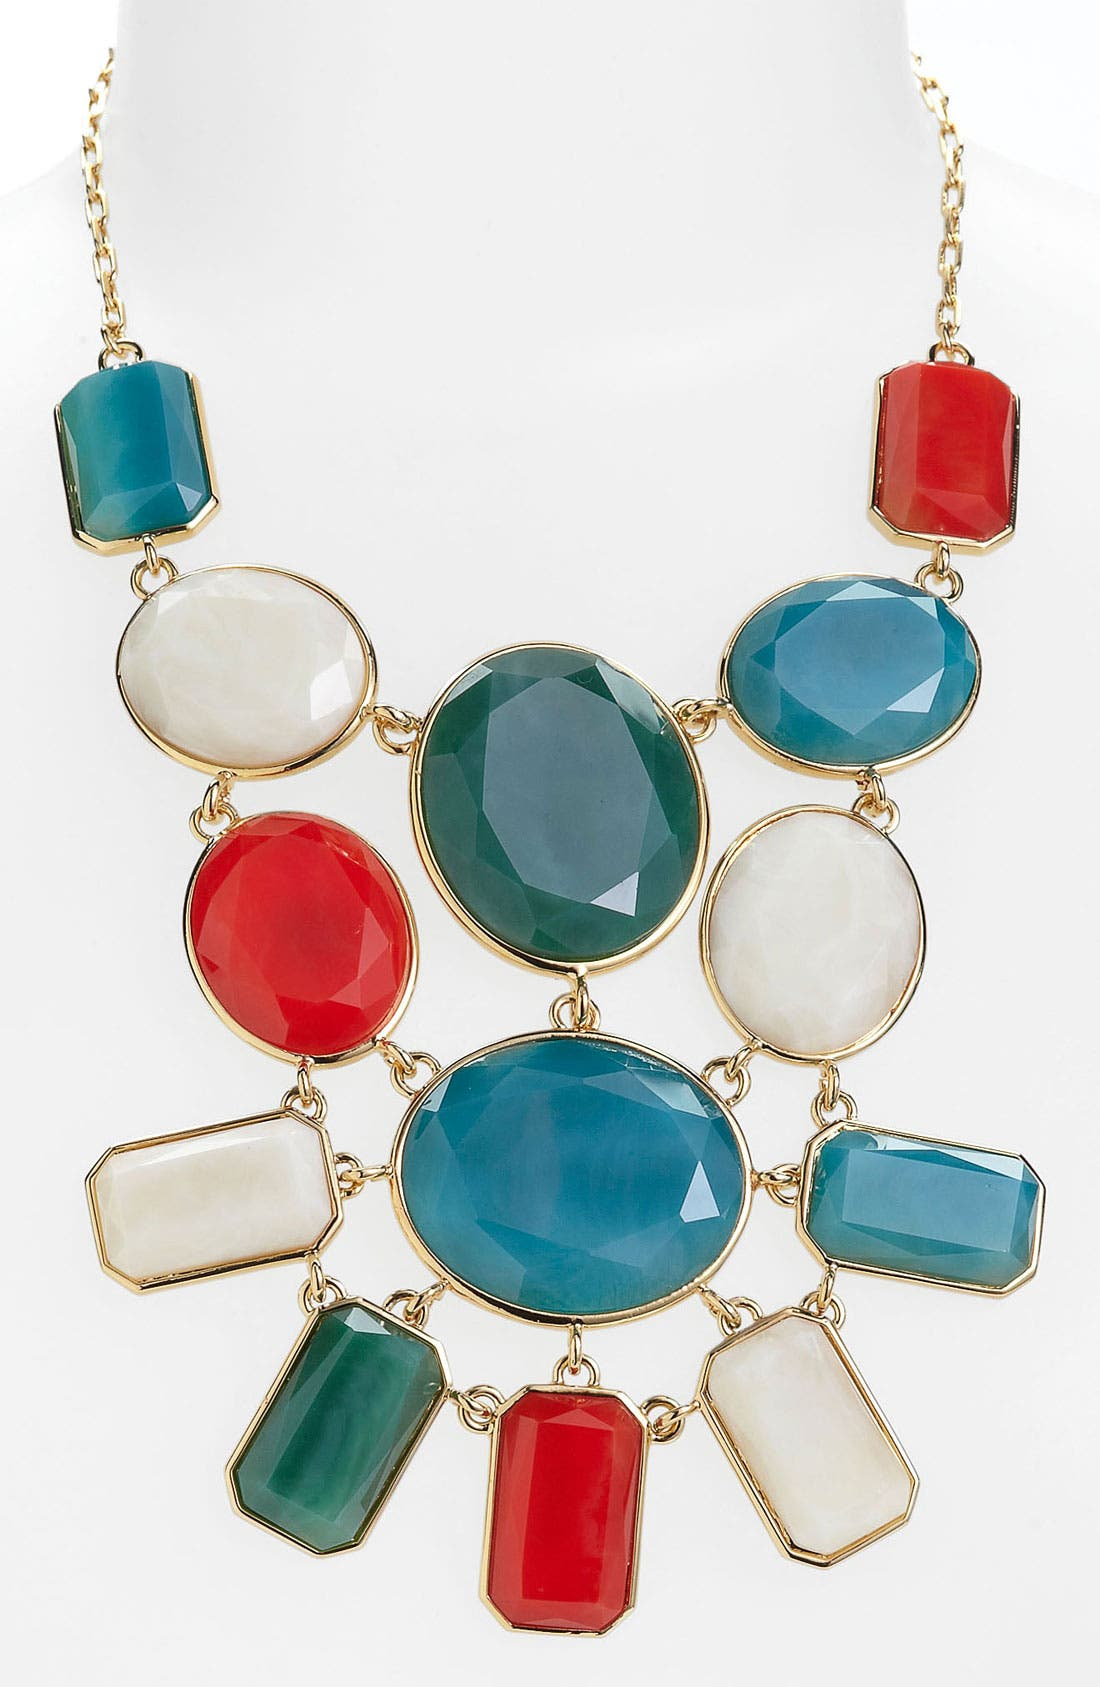 Main Image - kate spade new york 'dazzle drops' bib necklace